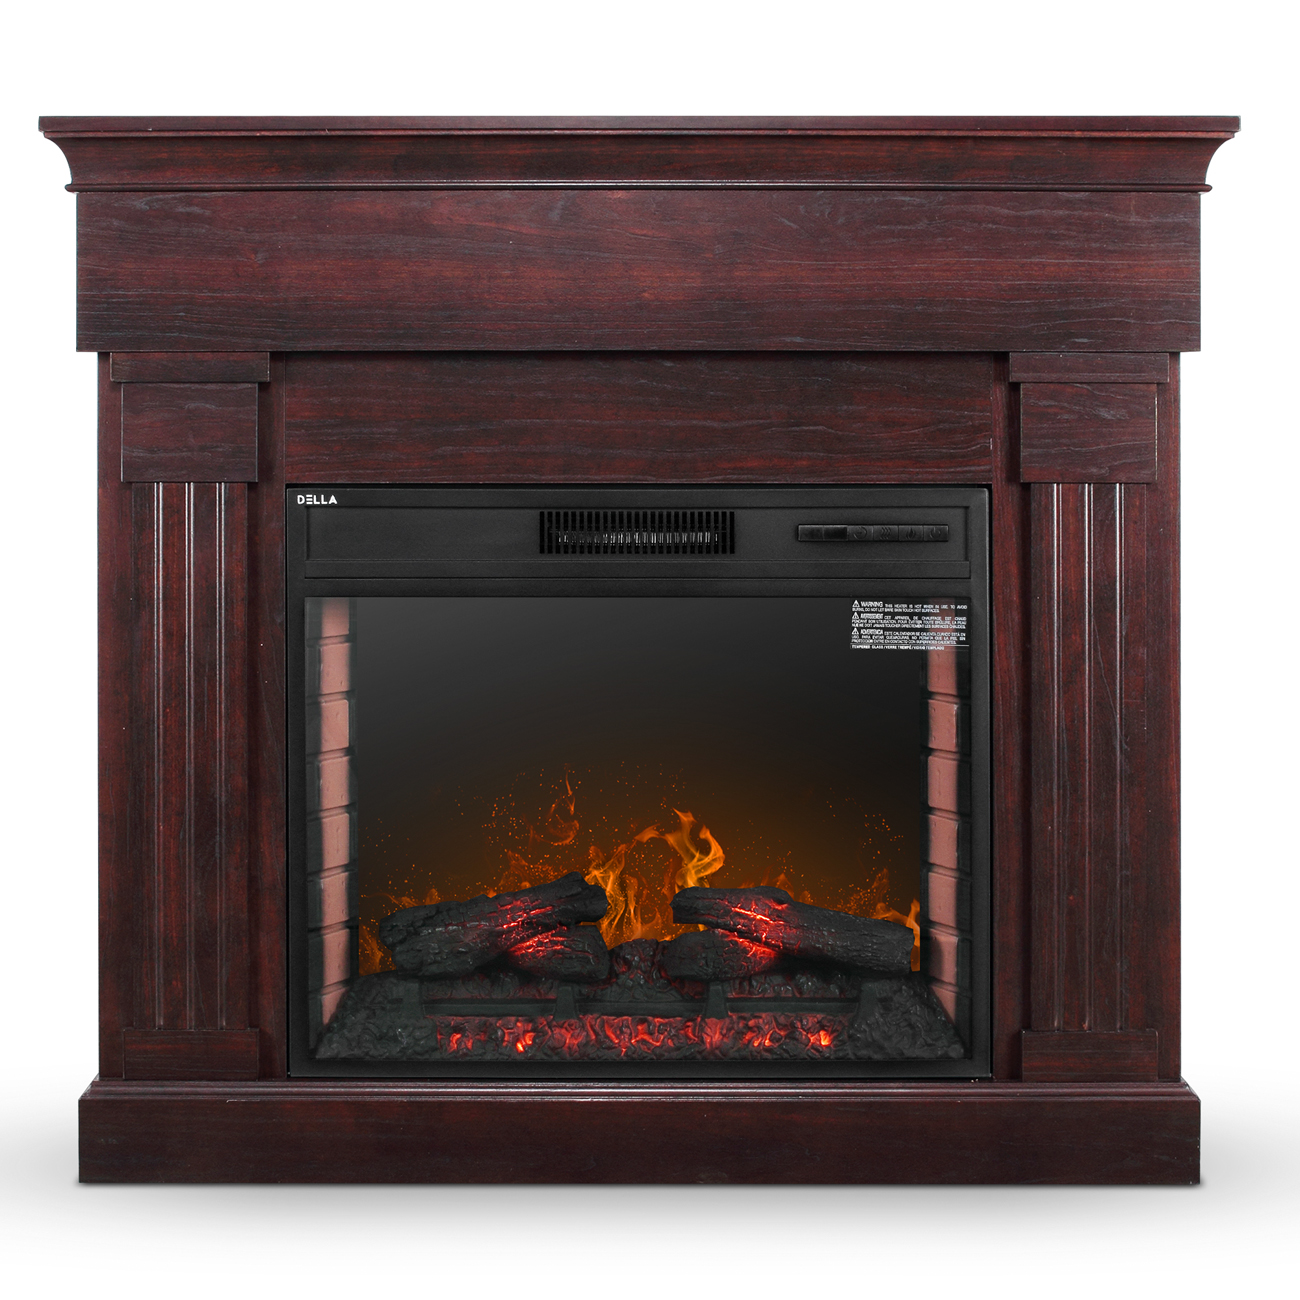 28 1400w Embedded Fireplace Electric Insert Heater Mantel Flame